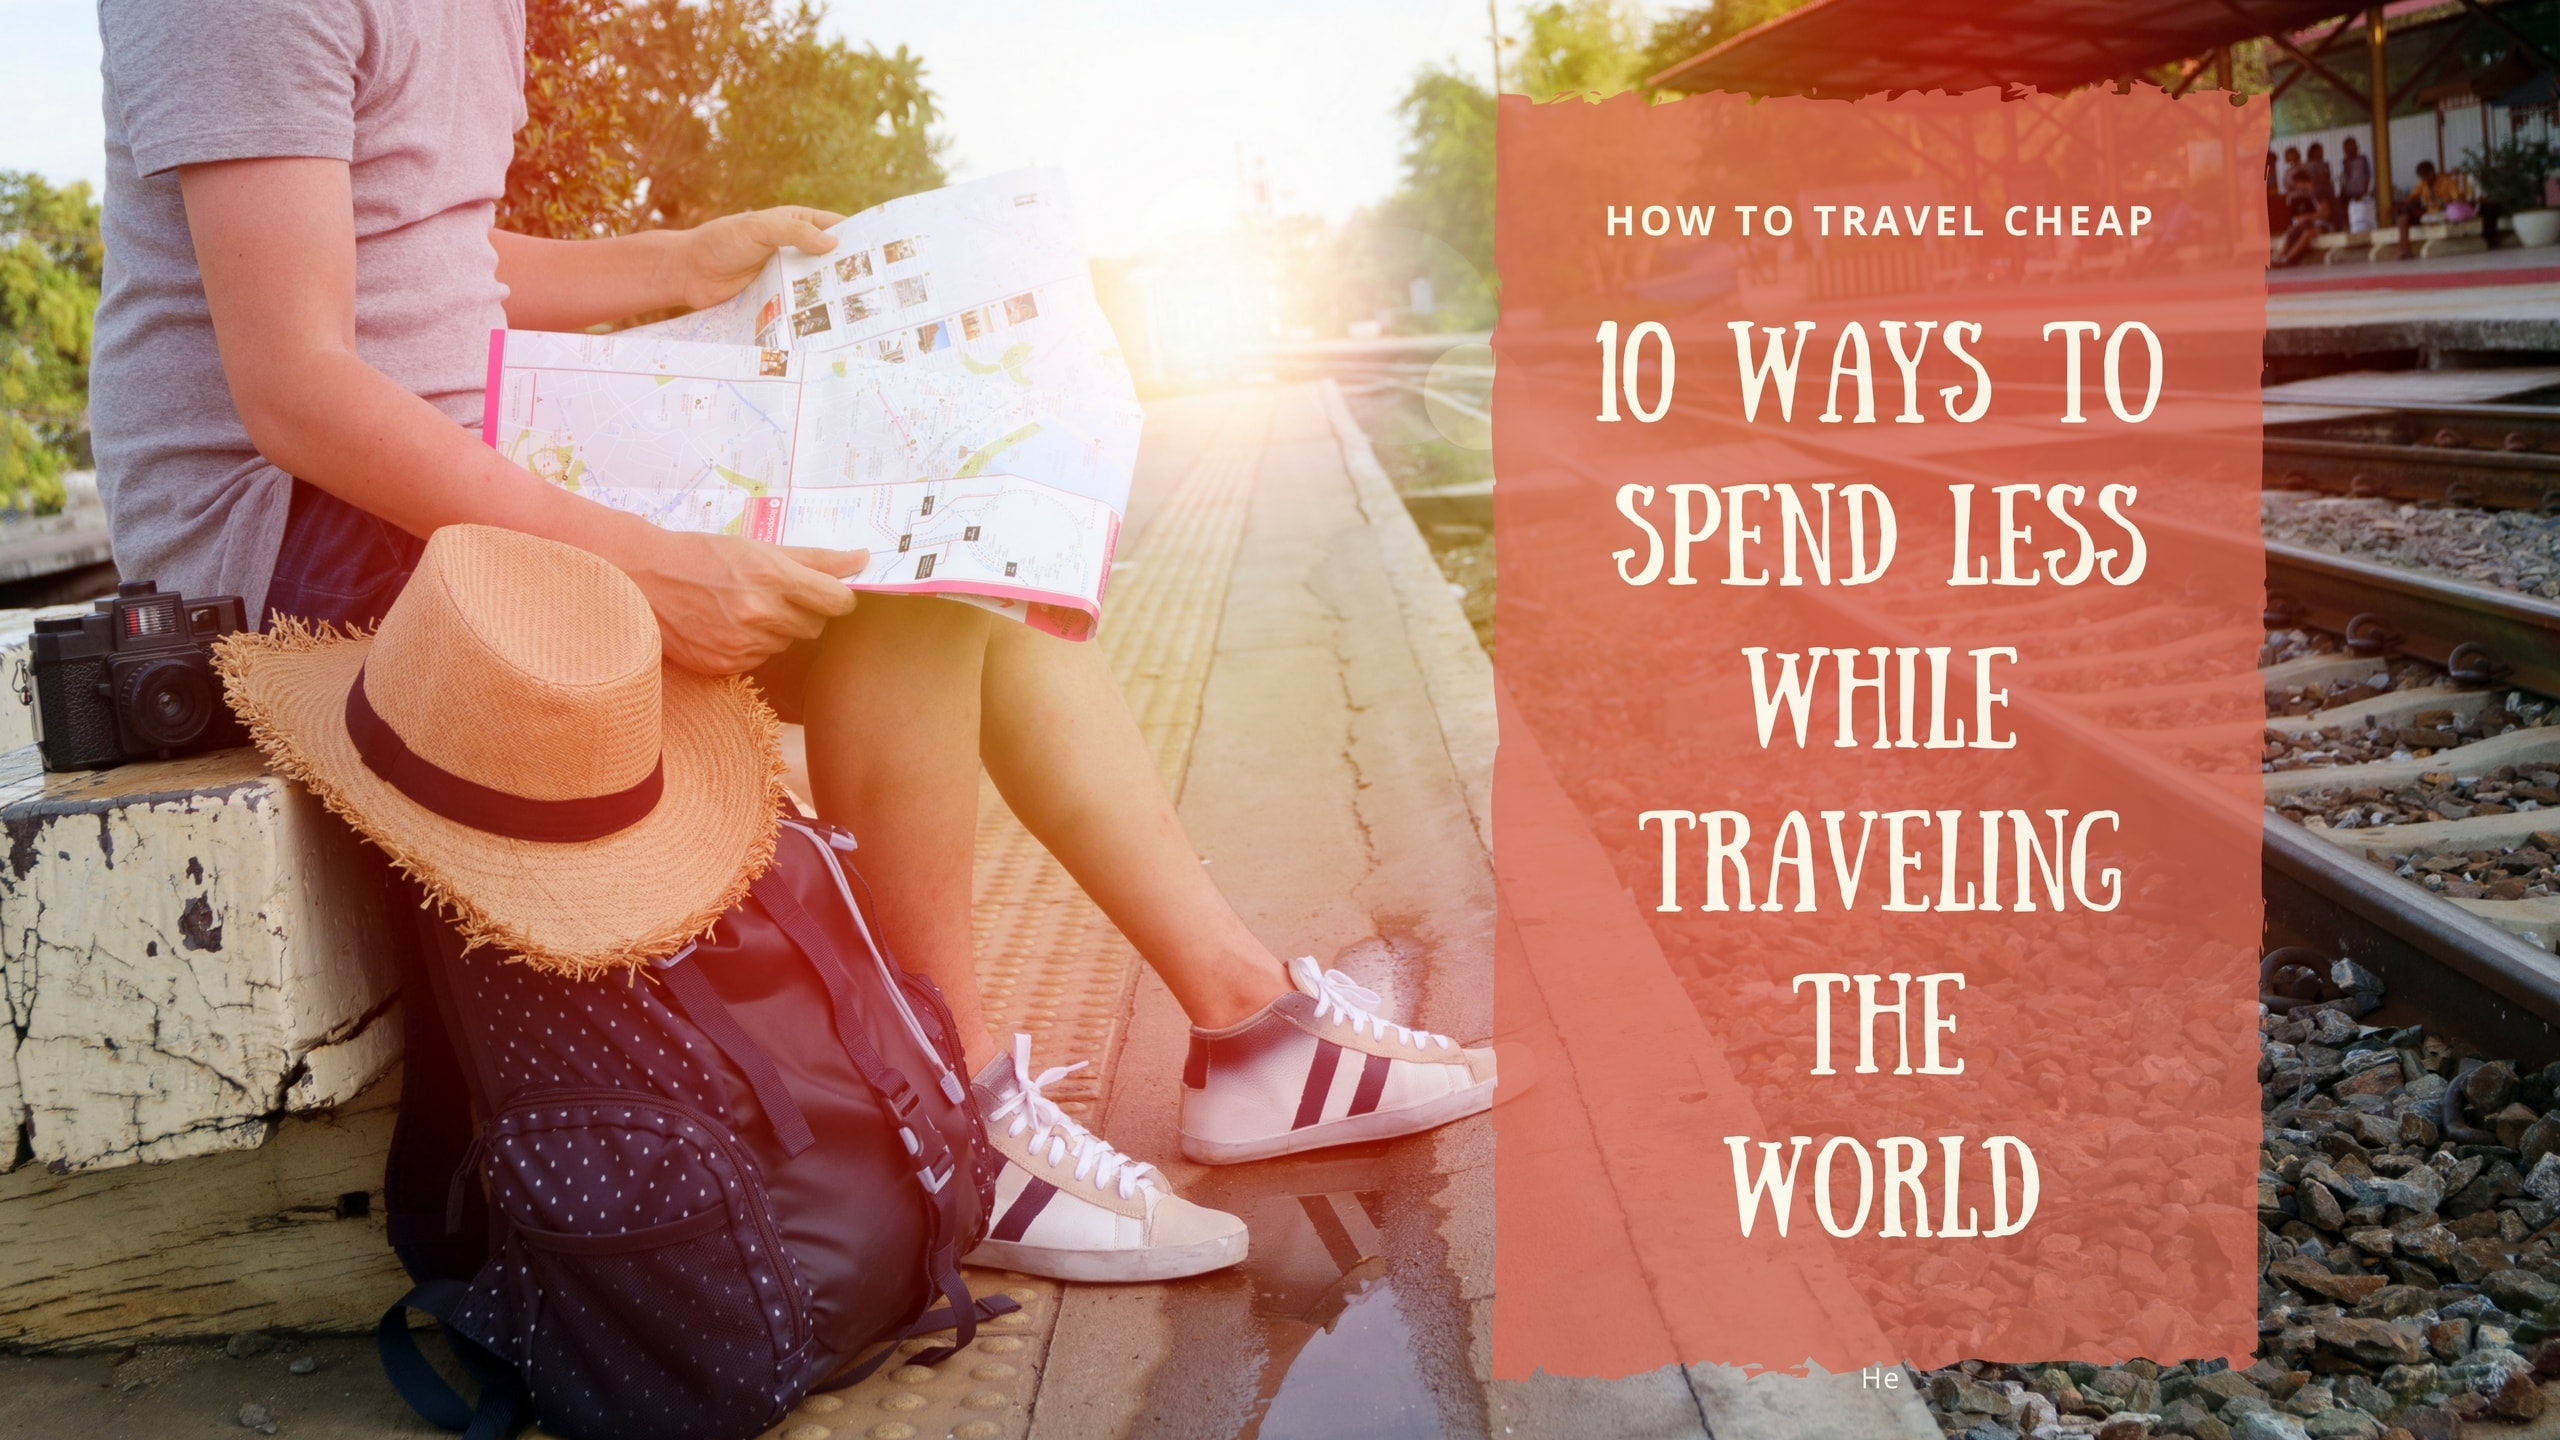 HOW TO TRAVEL CHEAP: 10 CLEVER WAYS TO SPEND LESS WHILE TRAVELING THE WORLD